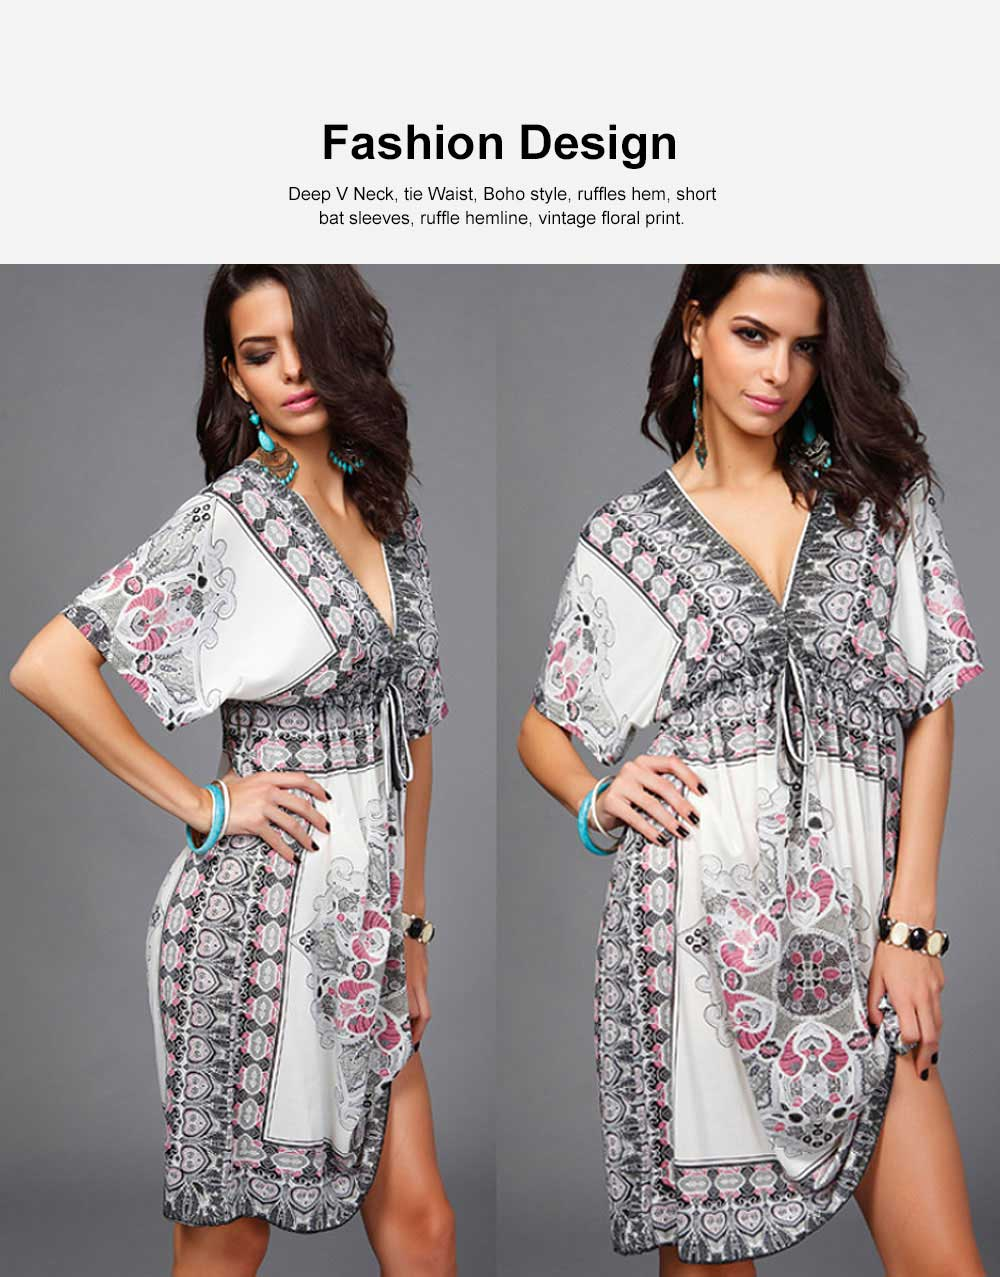 Women's Sexy Dress, Summer V-neck Bohemian Floral Printed Mini Dress, Knee High Dress with Belt for Gifts 2